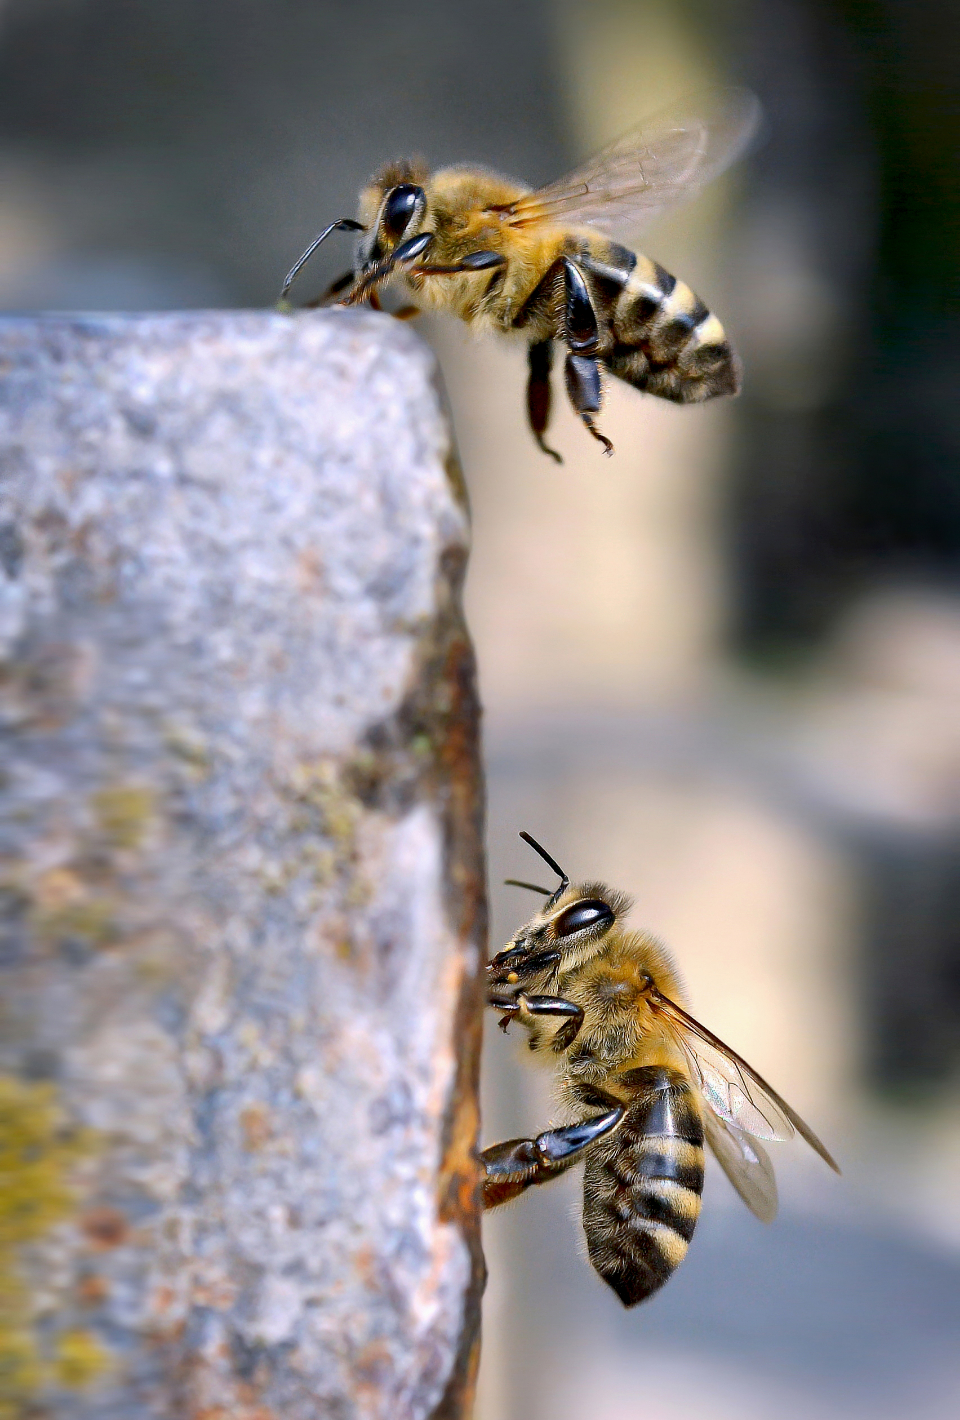 bees insects flying macro close up outdoors nature honey